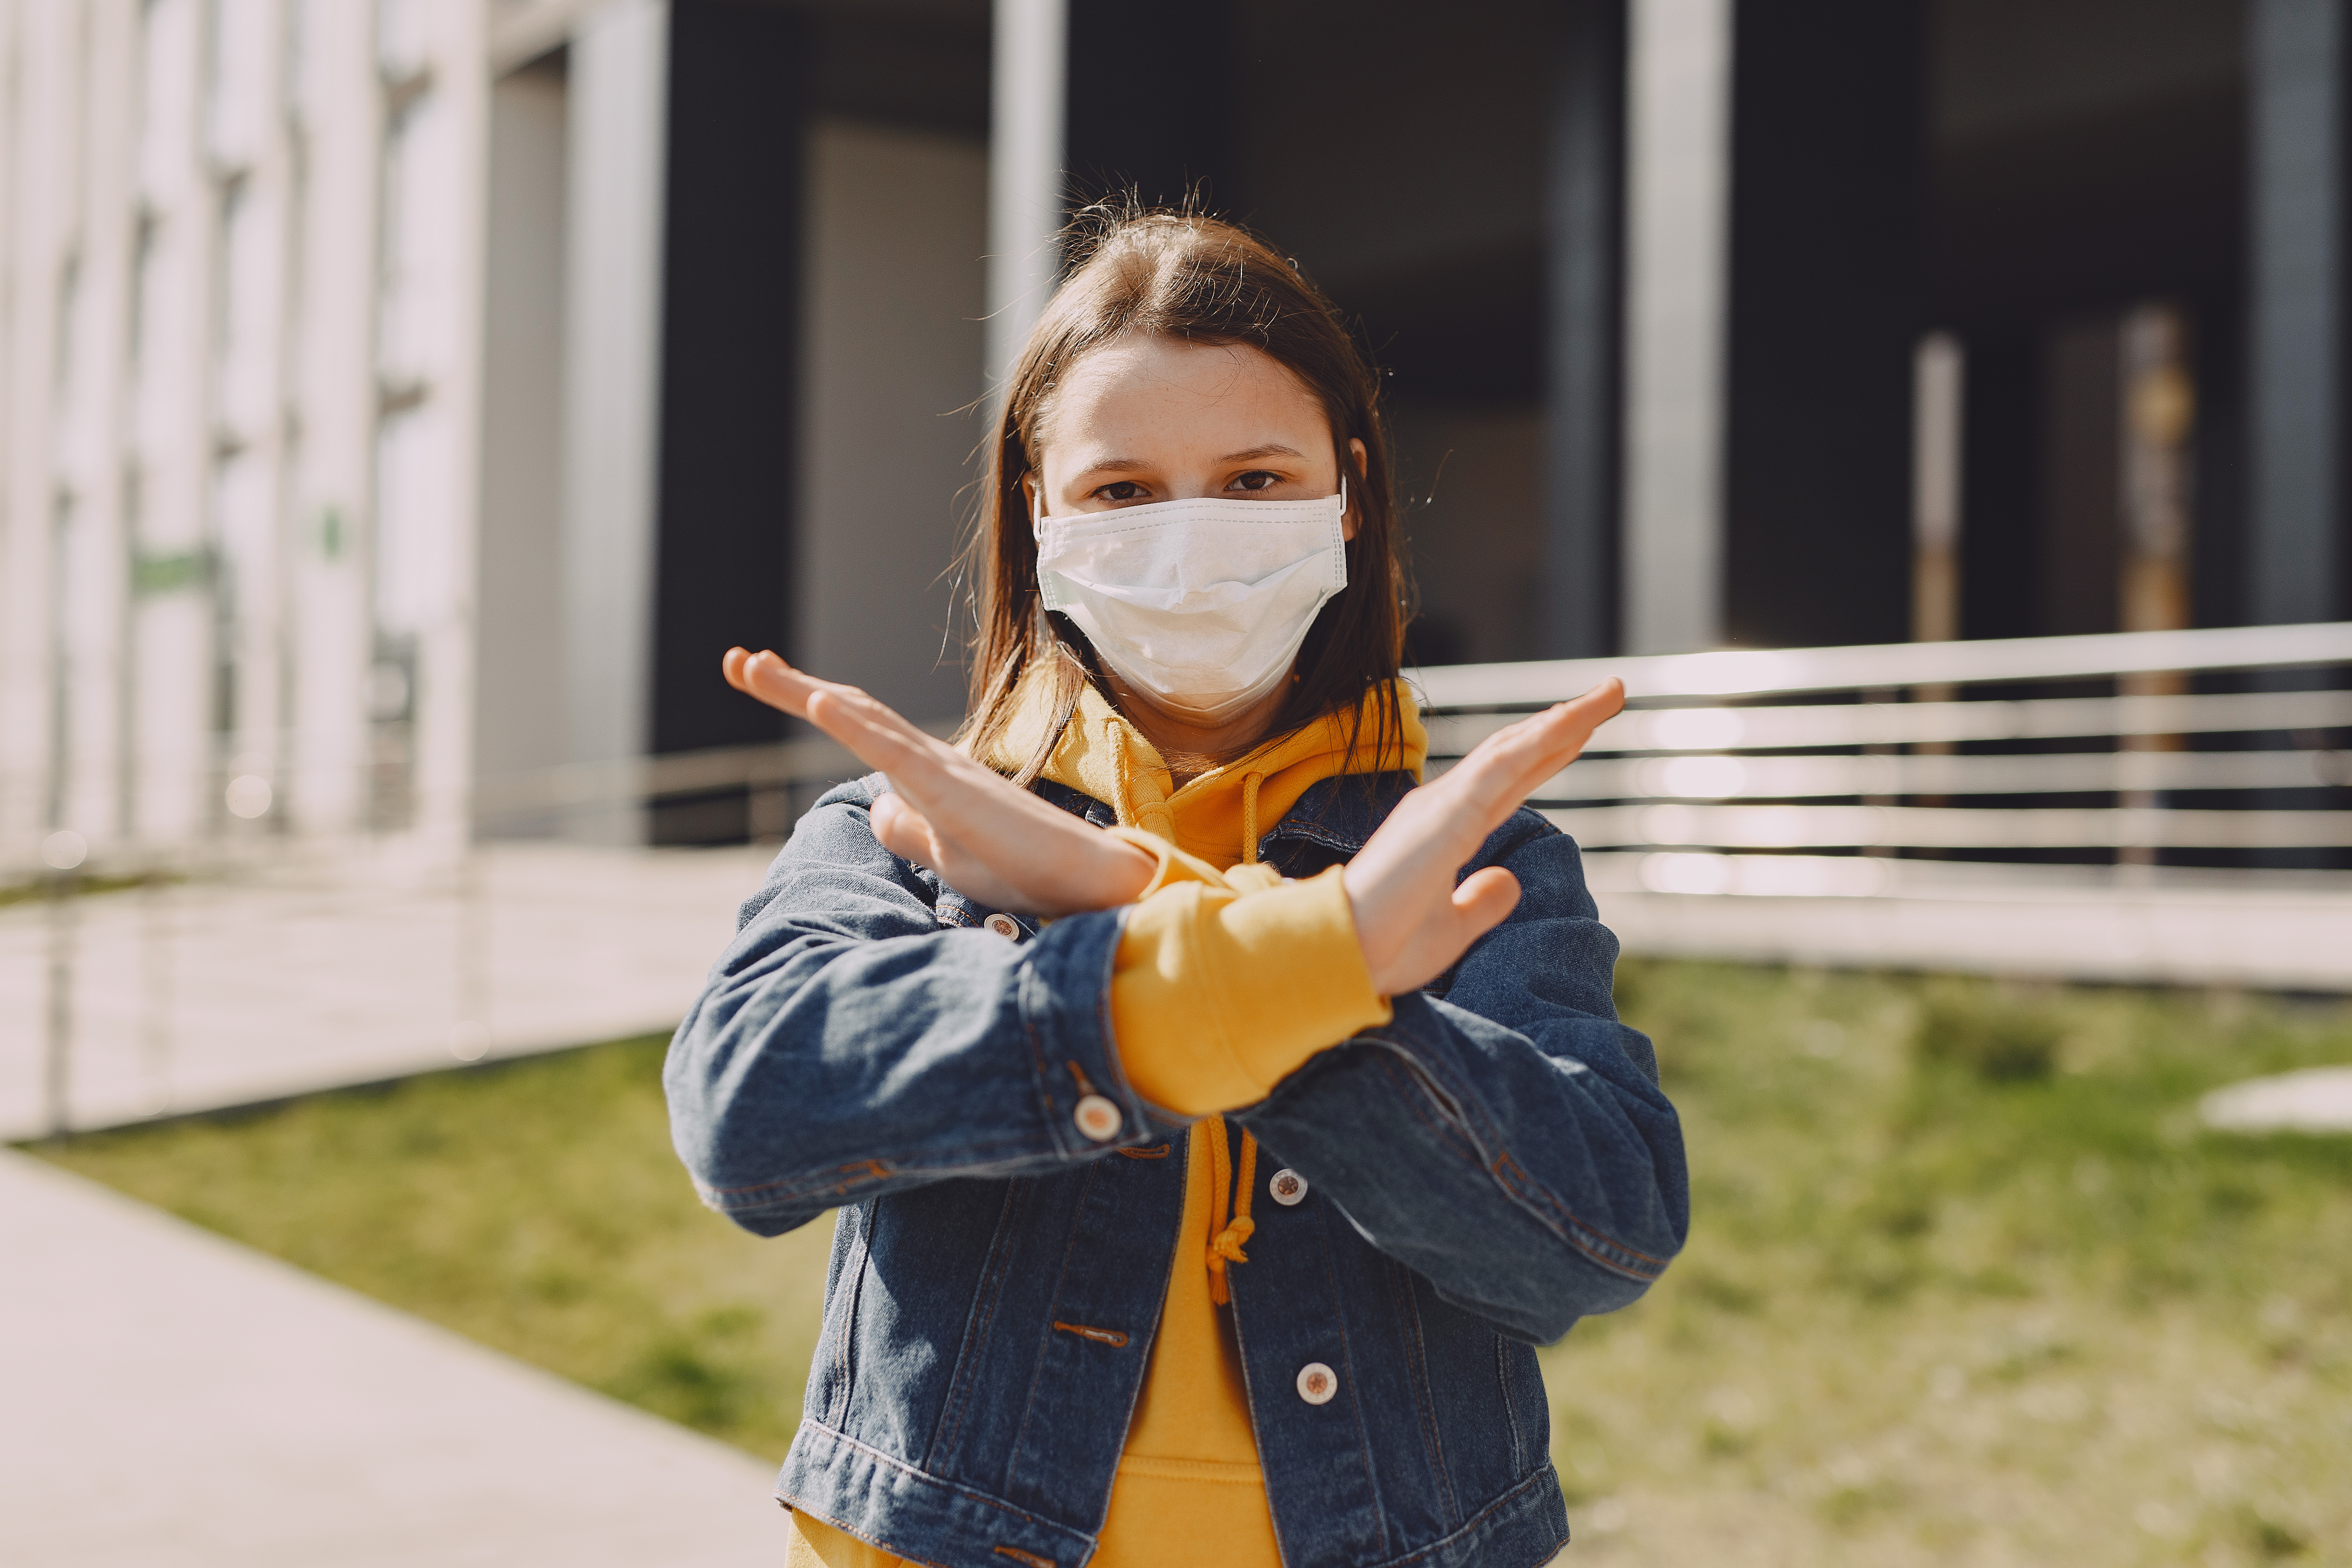 girl-in-medical-mask-showing-stop-looking-at-camera-4127429